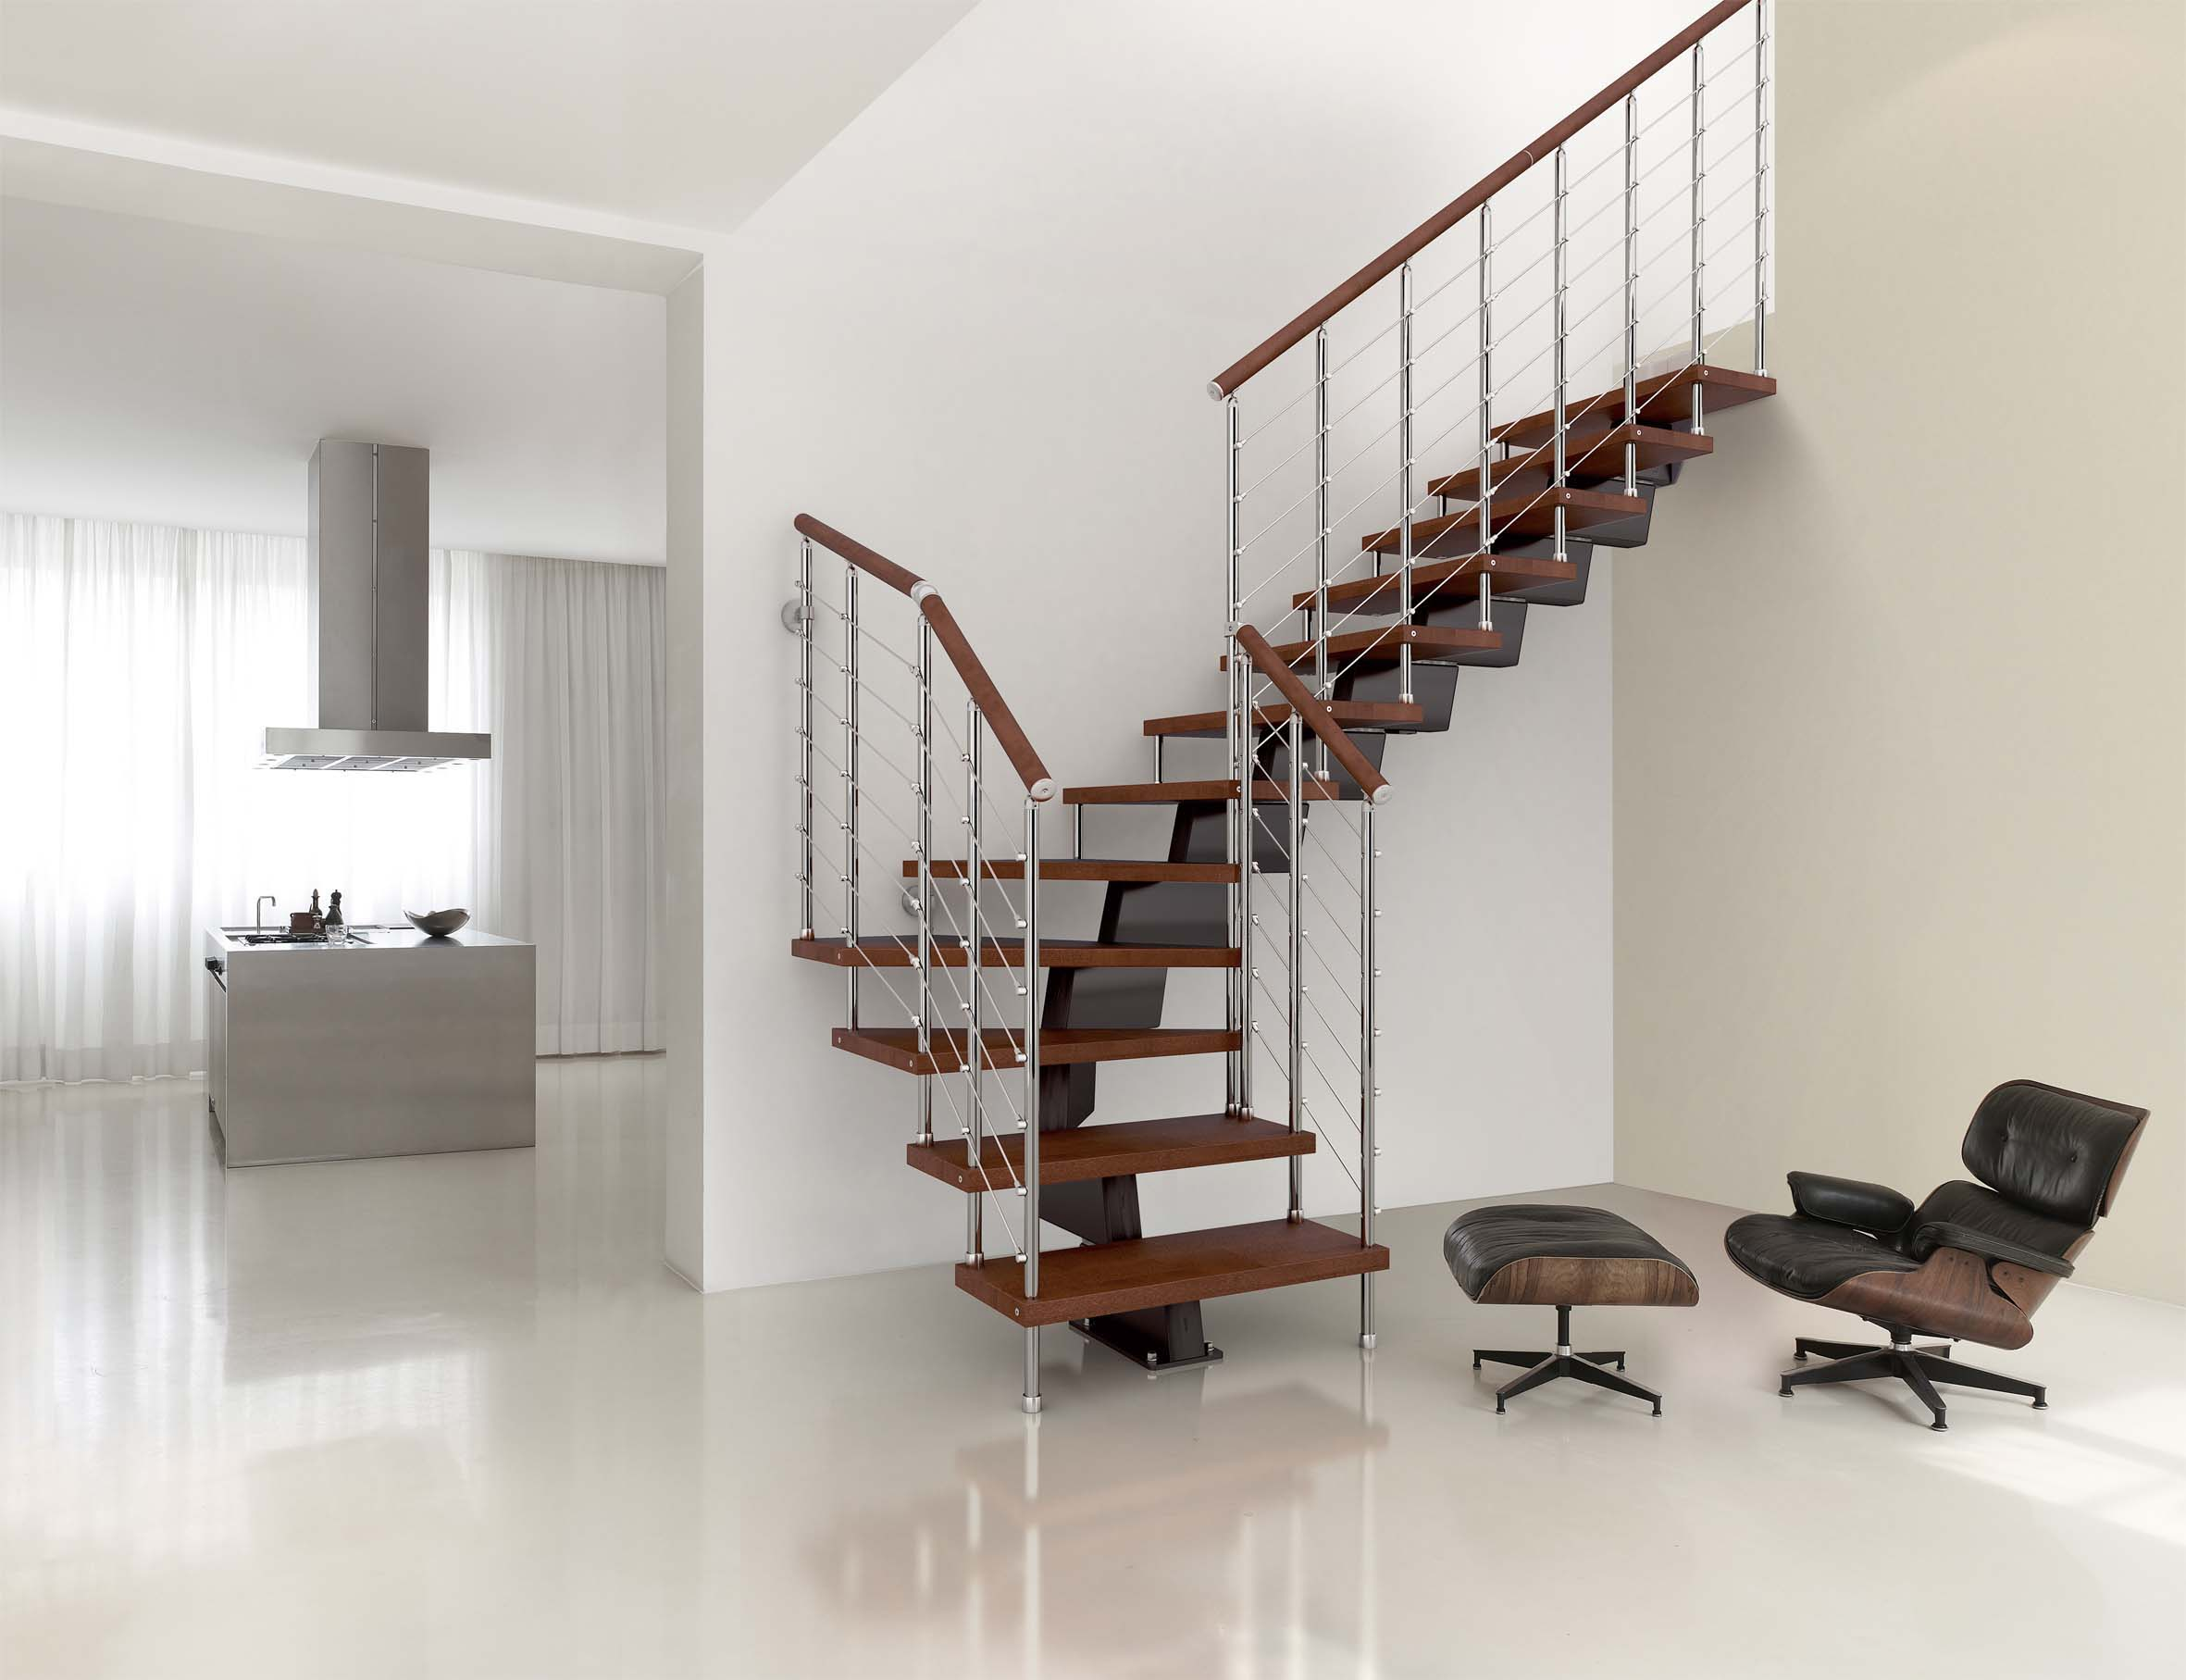 Genius RA050 Winder Staircase By Fontanot